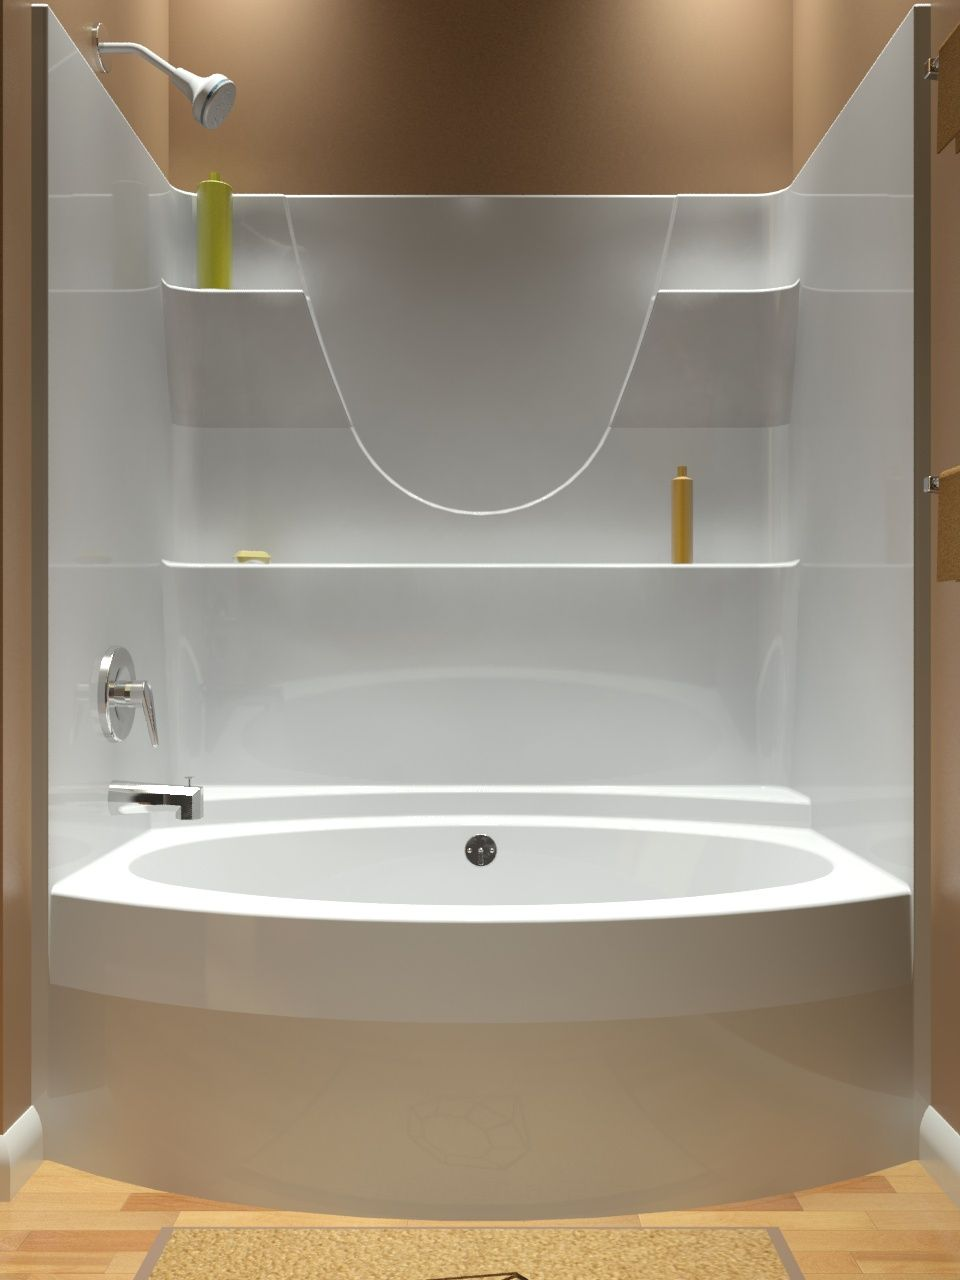 one piece acrylic tub shower units. Tub and Shower  One Piece T 603580 Diamond Showers SHOWER TUB UNITS Pinterest